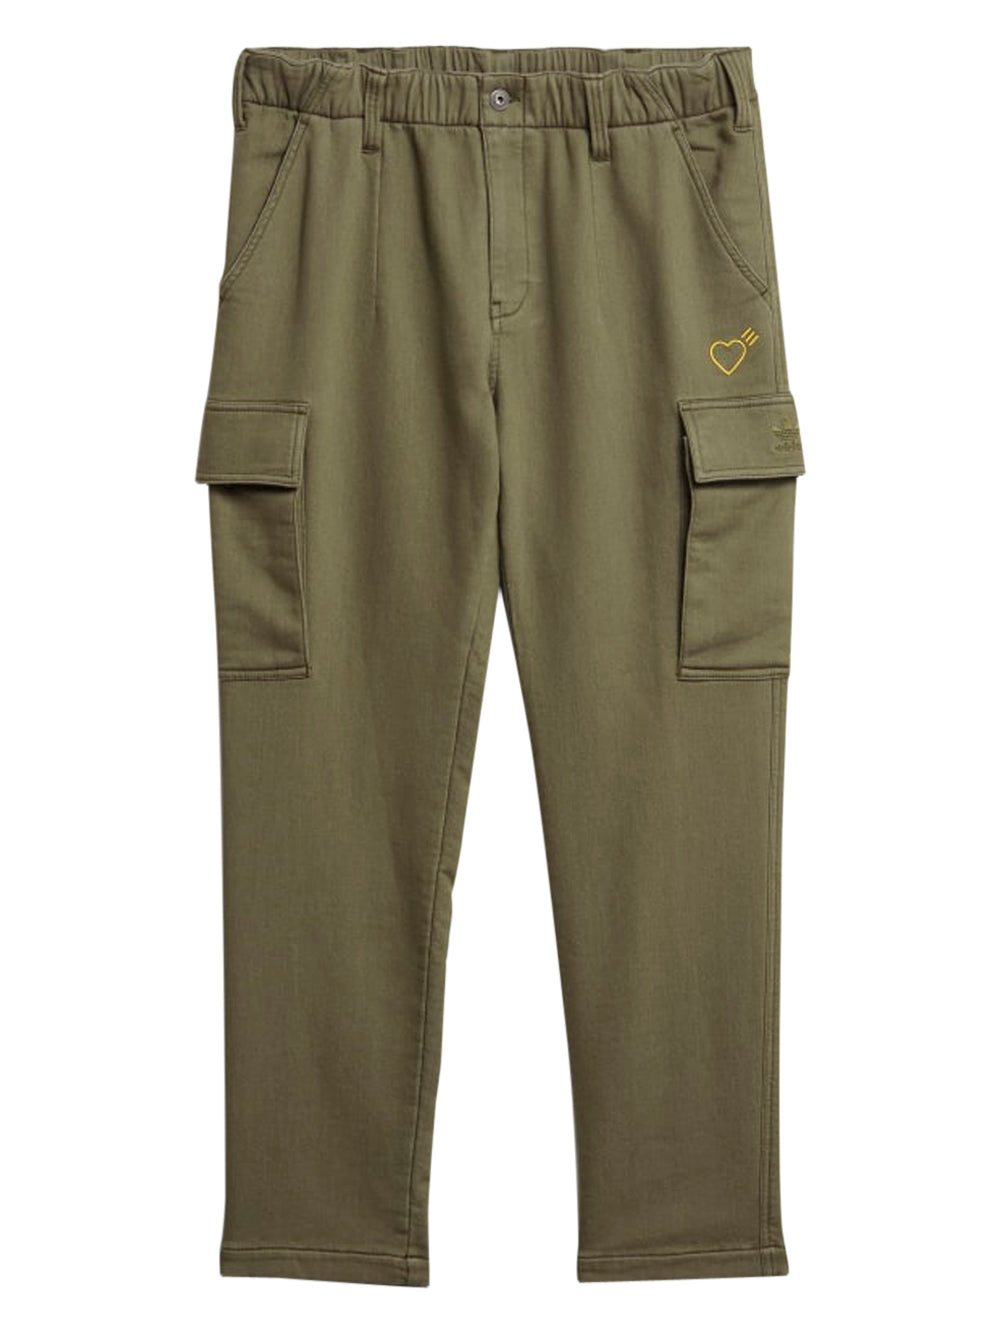 Green Human Made Cargo Pants